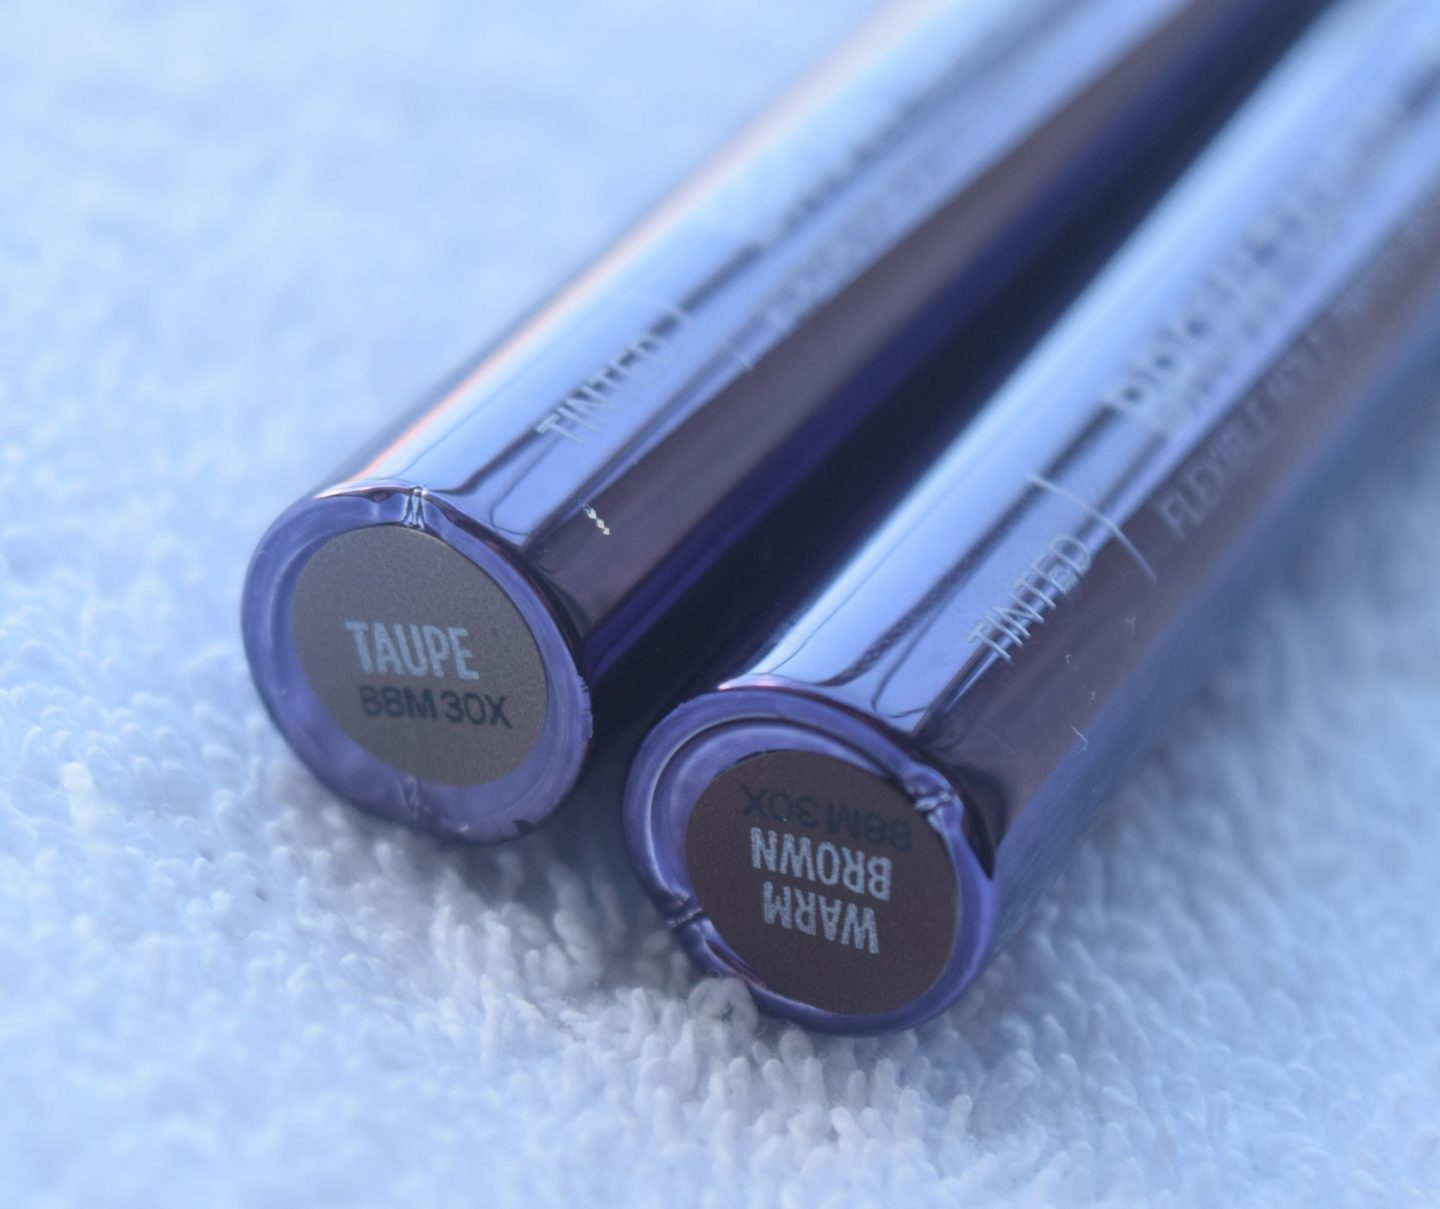 Urban Decay Brow Tame taupe warm brown